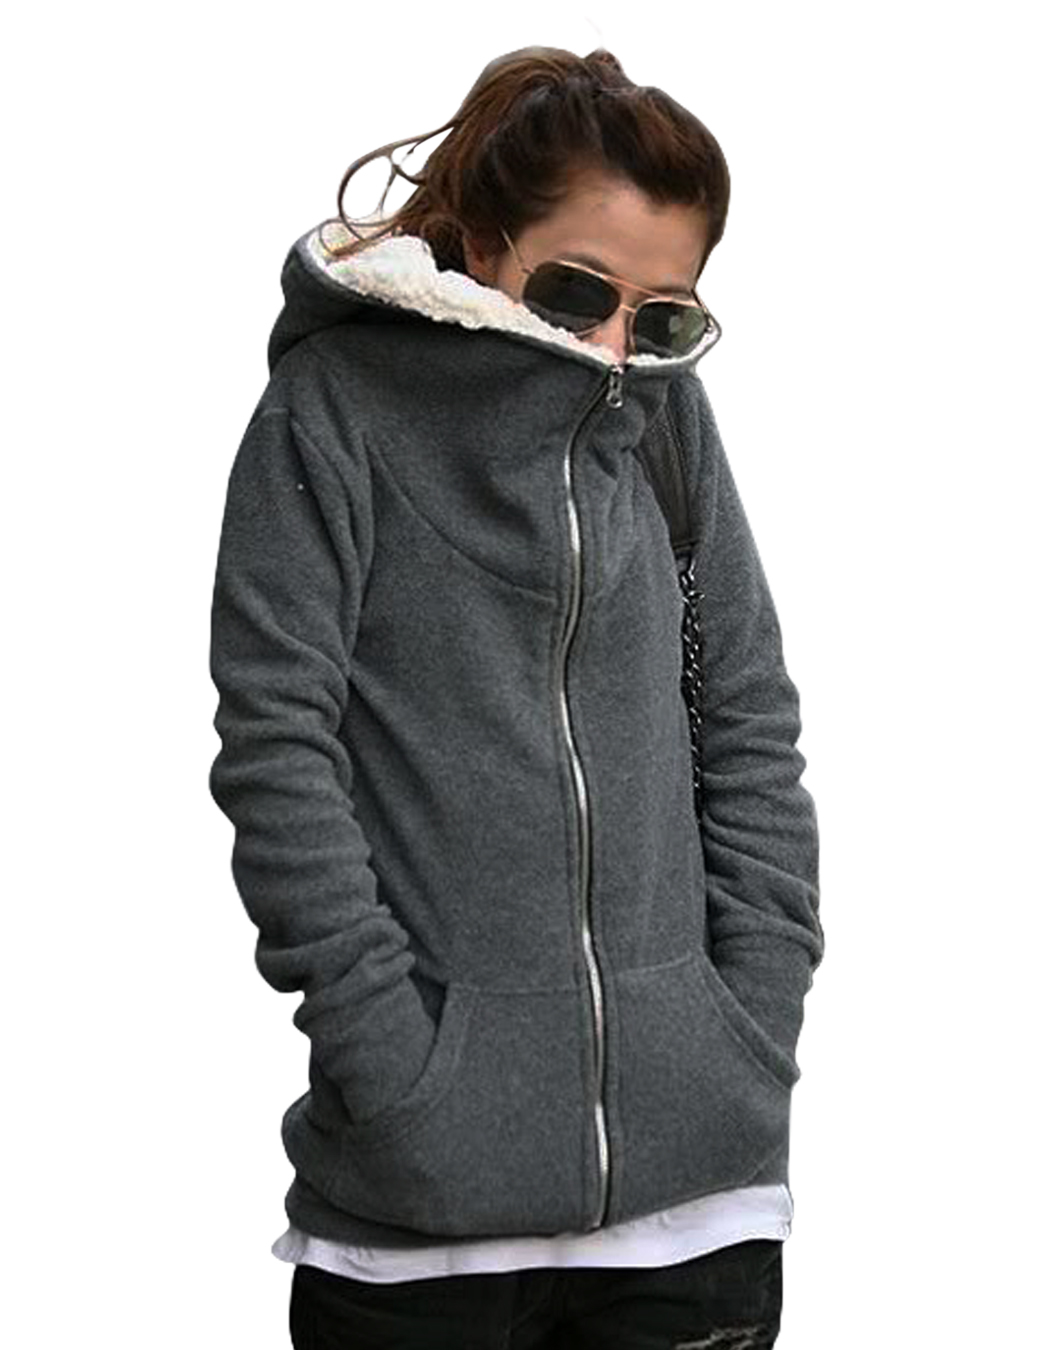 Thick Hoodies Womens - Hardon Clothes